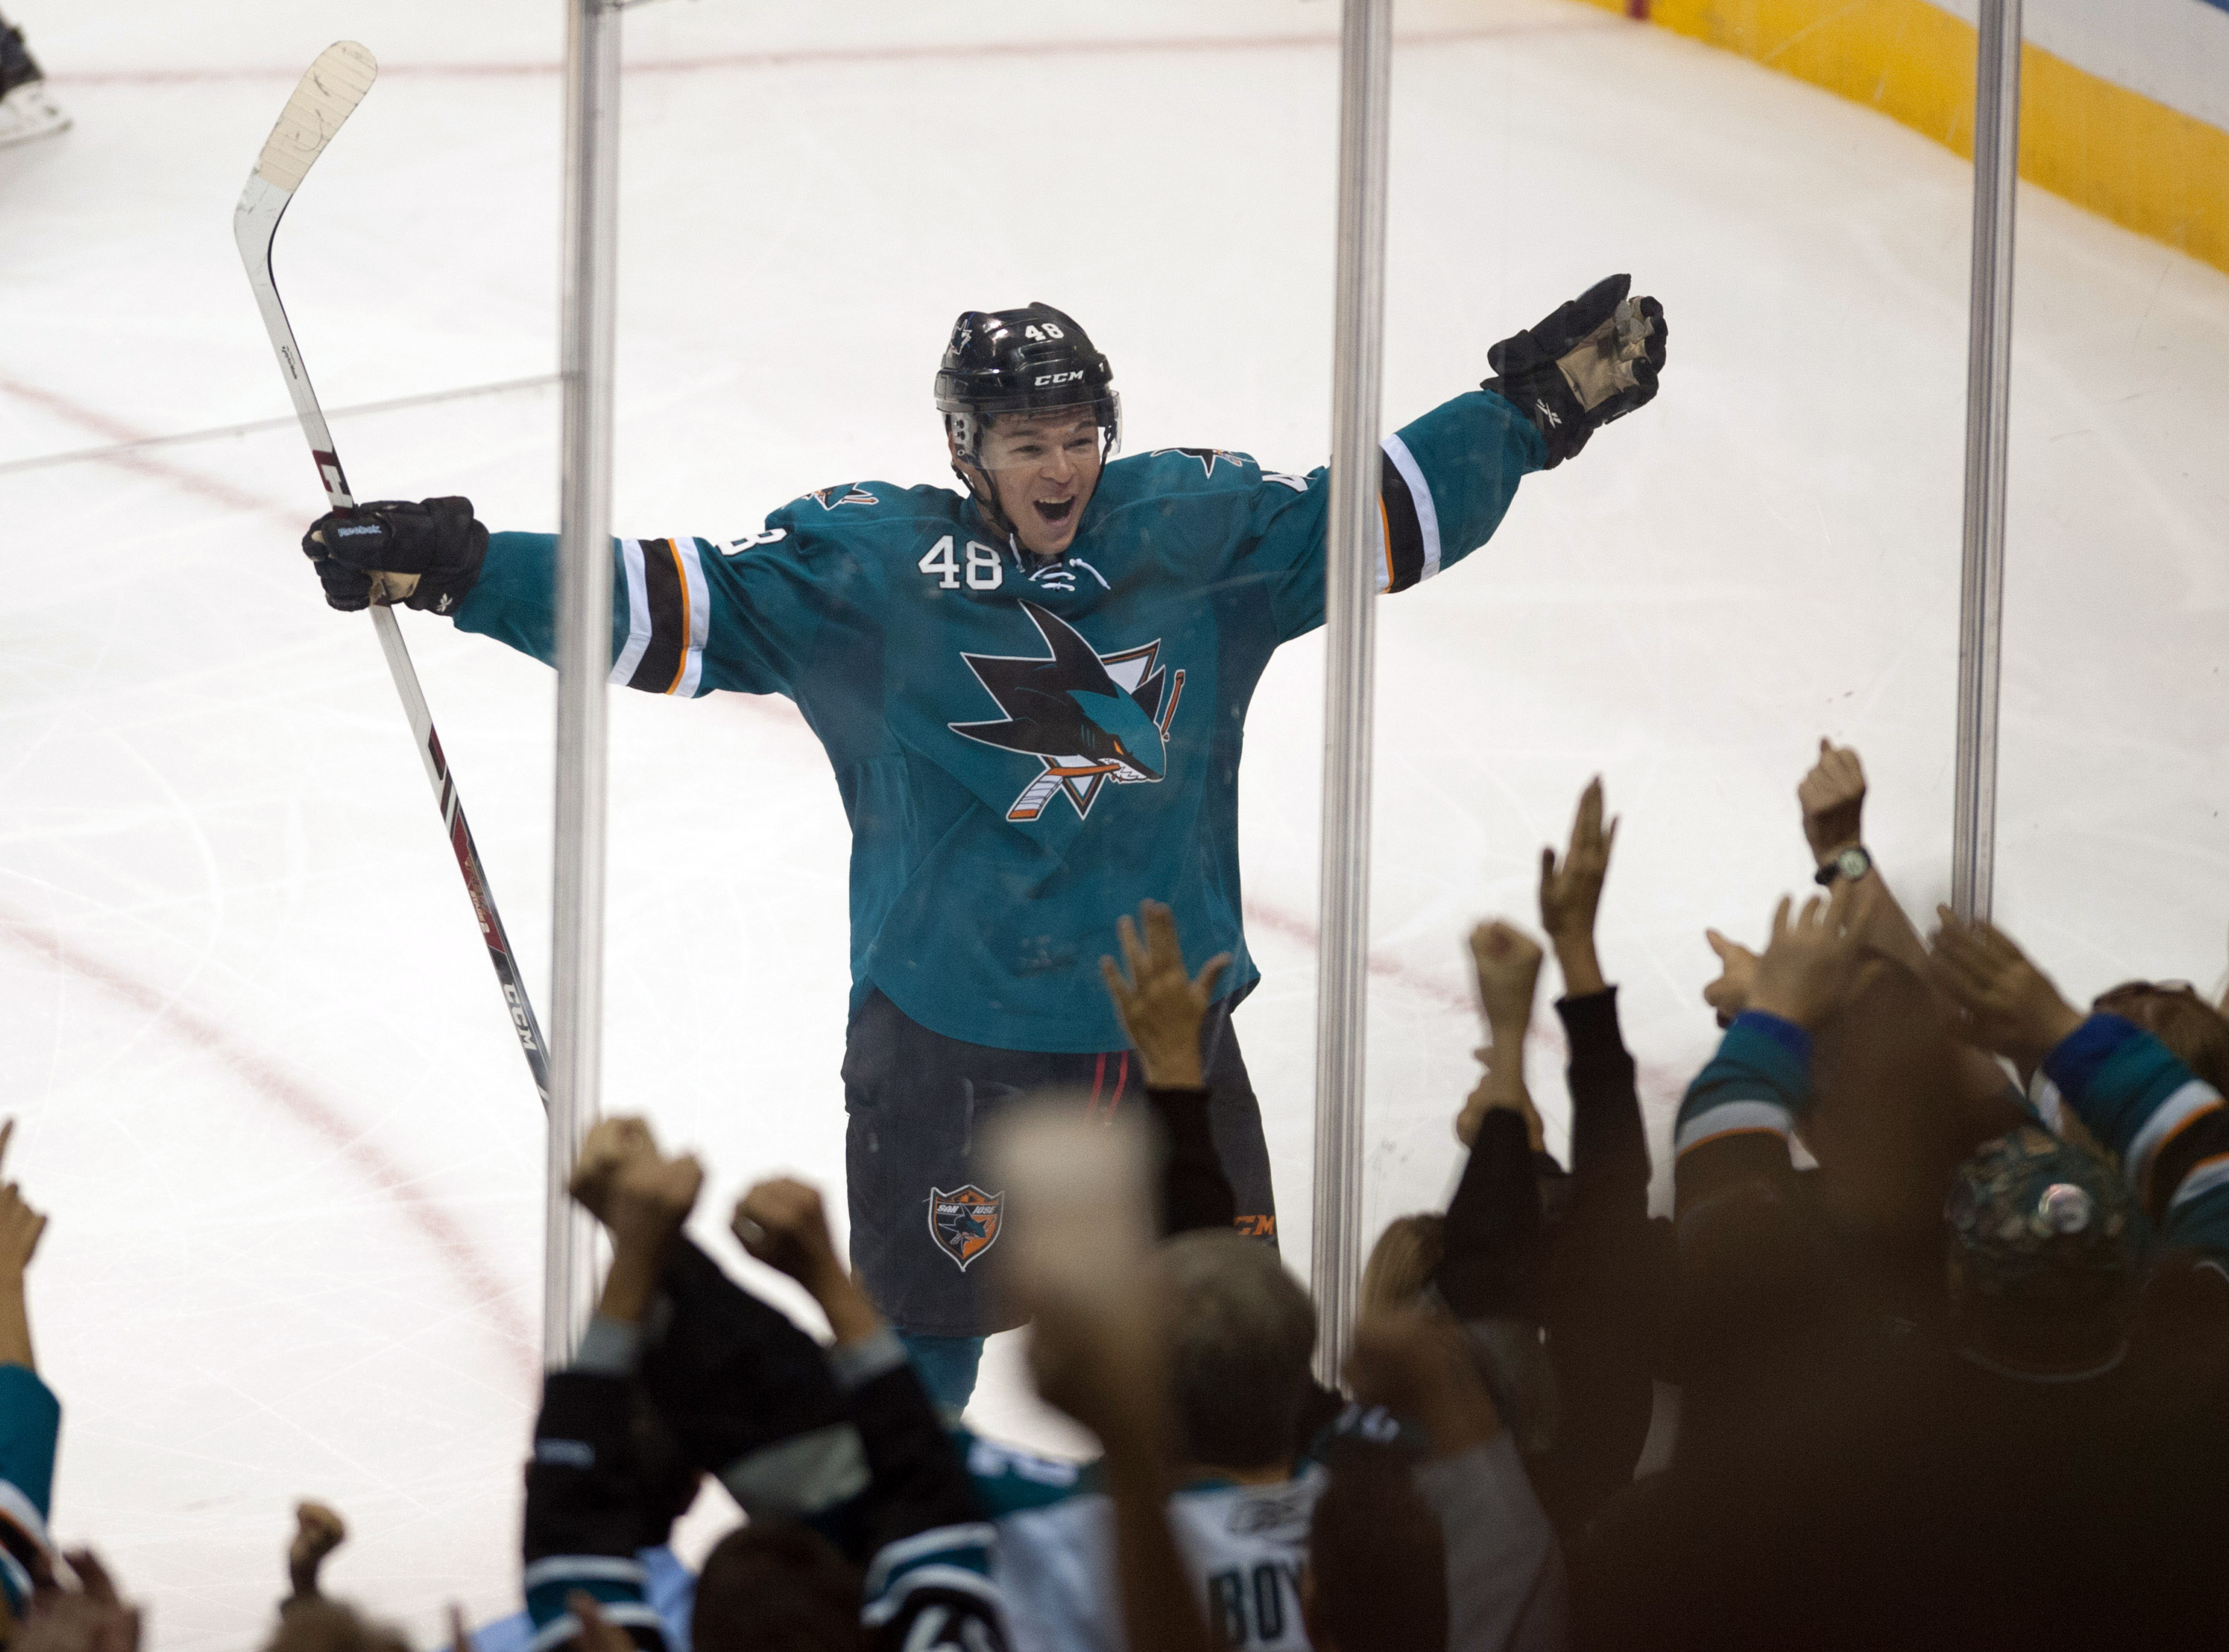 Tomas Hertl goes between his legs for 4th goal of night